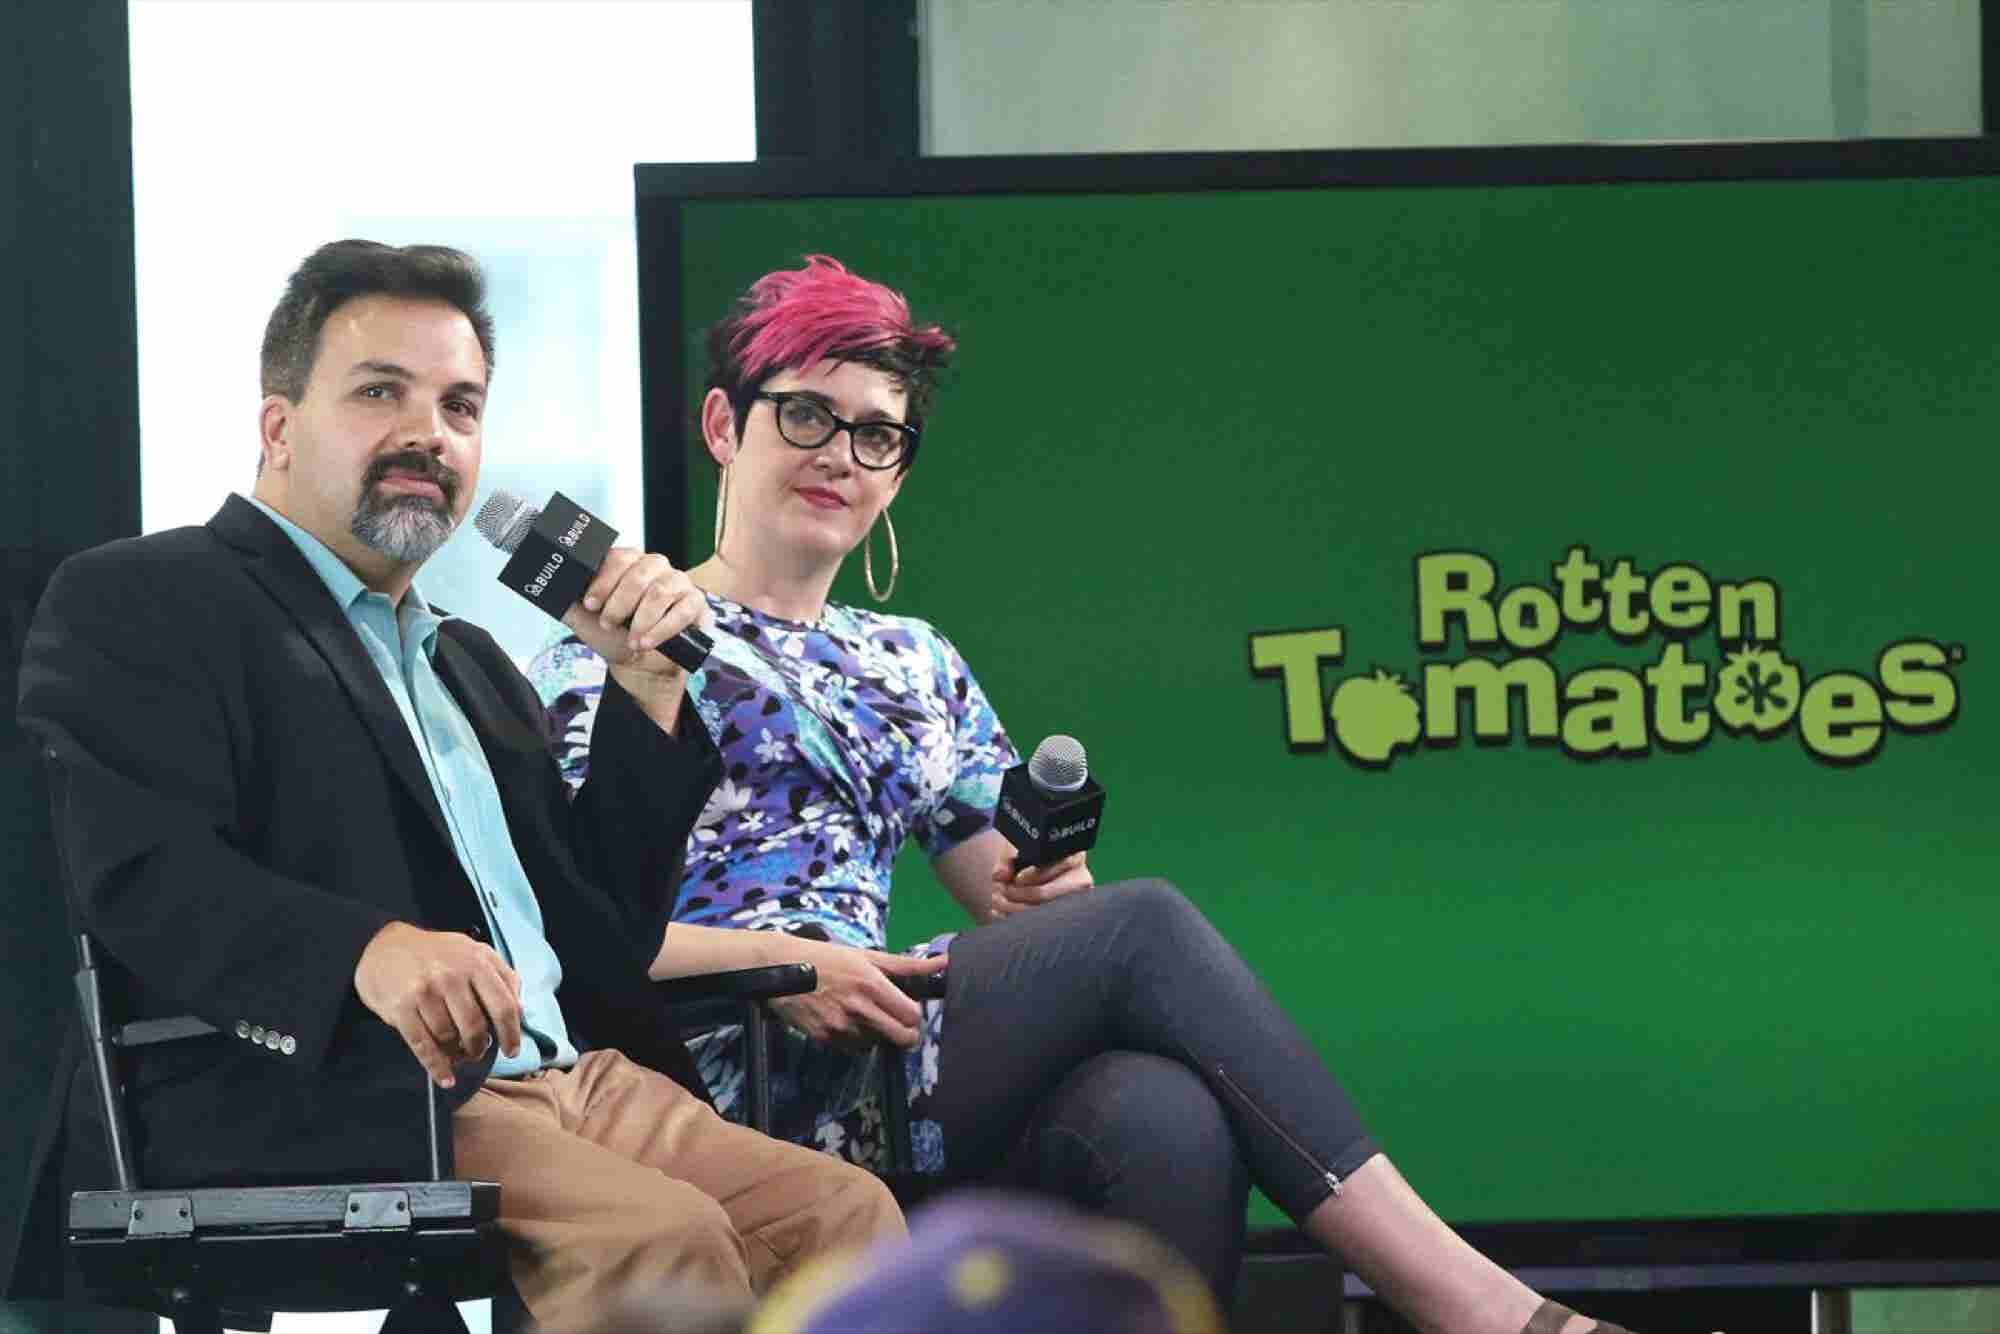 3 Lessons Entrepreneurs Can Take from Hollywood's War on Rotten Tomatoes